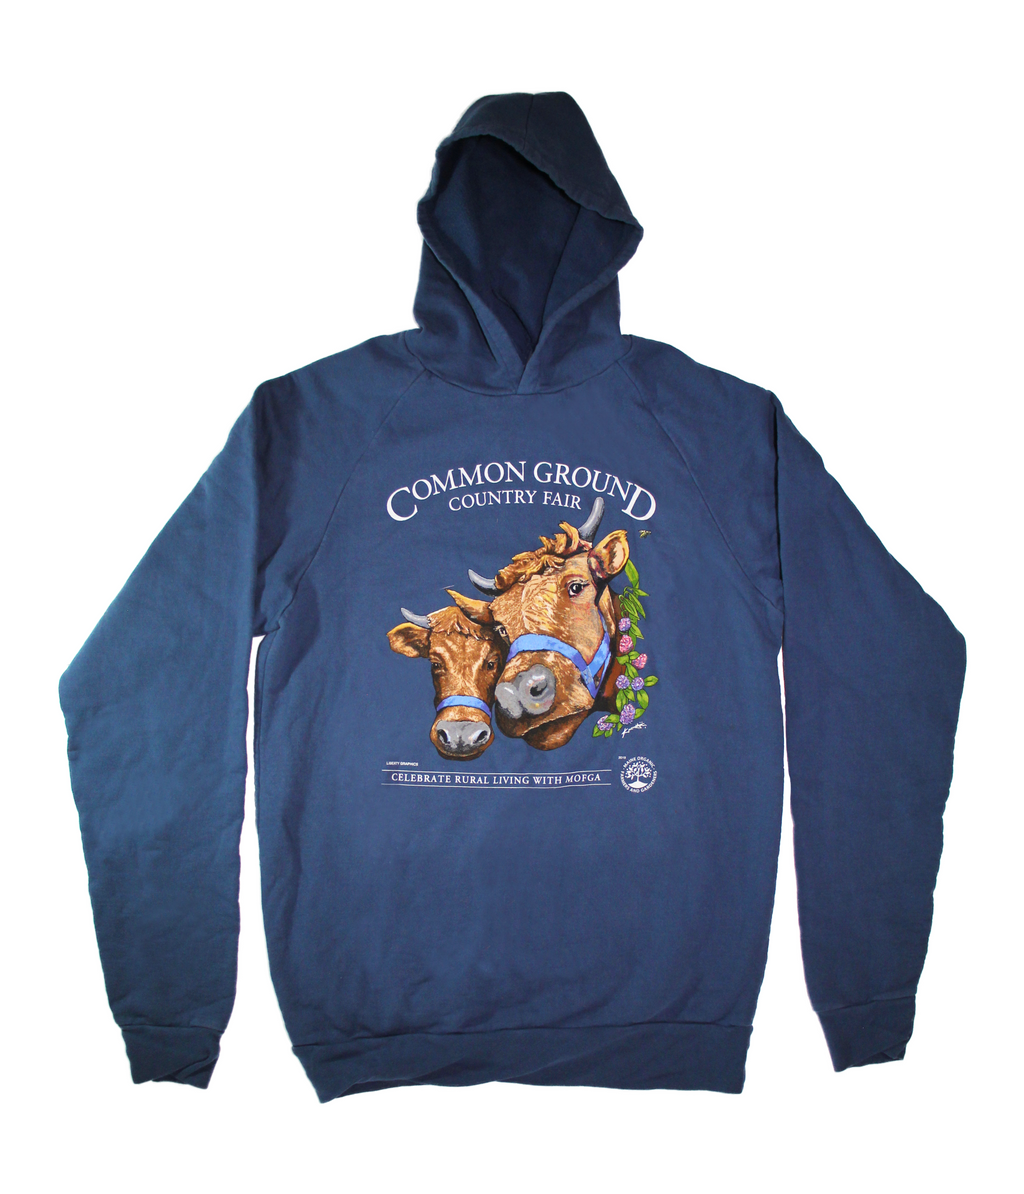 2019 Common Ground Country Fair - Adult Hooded Sweatshirt - Bluestone